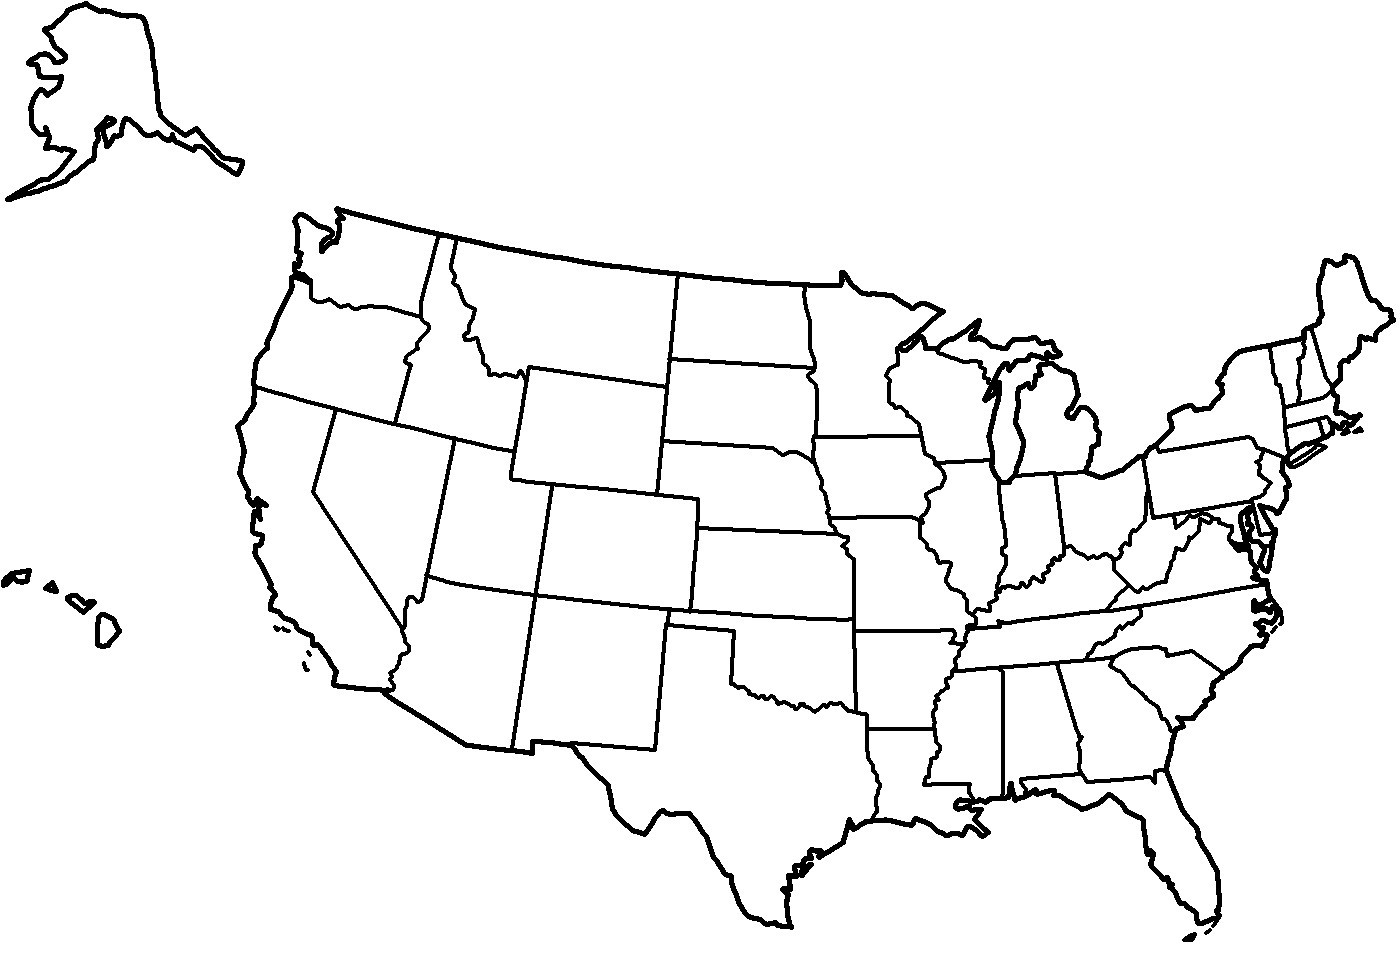 White united states map clipart vector transparent library At Clipart Of United States Map The Us Black And White ... vector transparent library